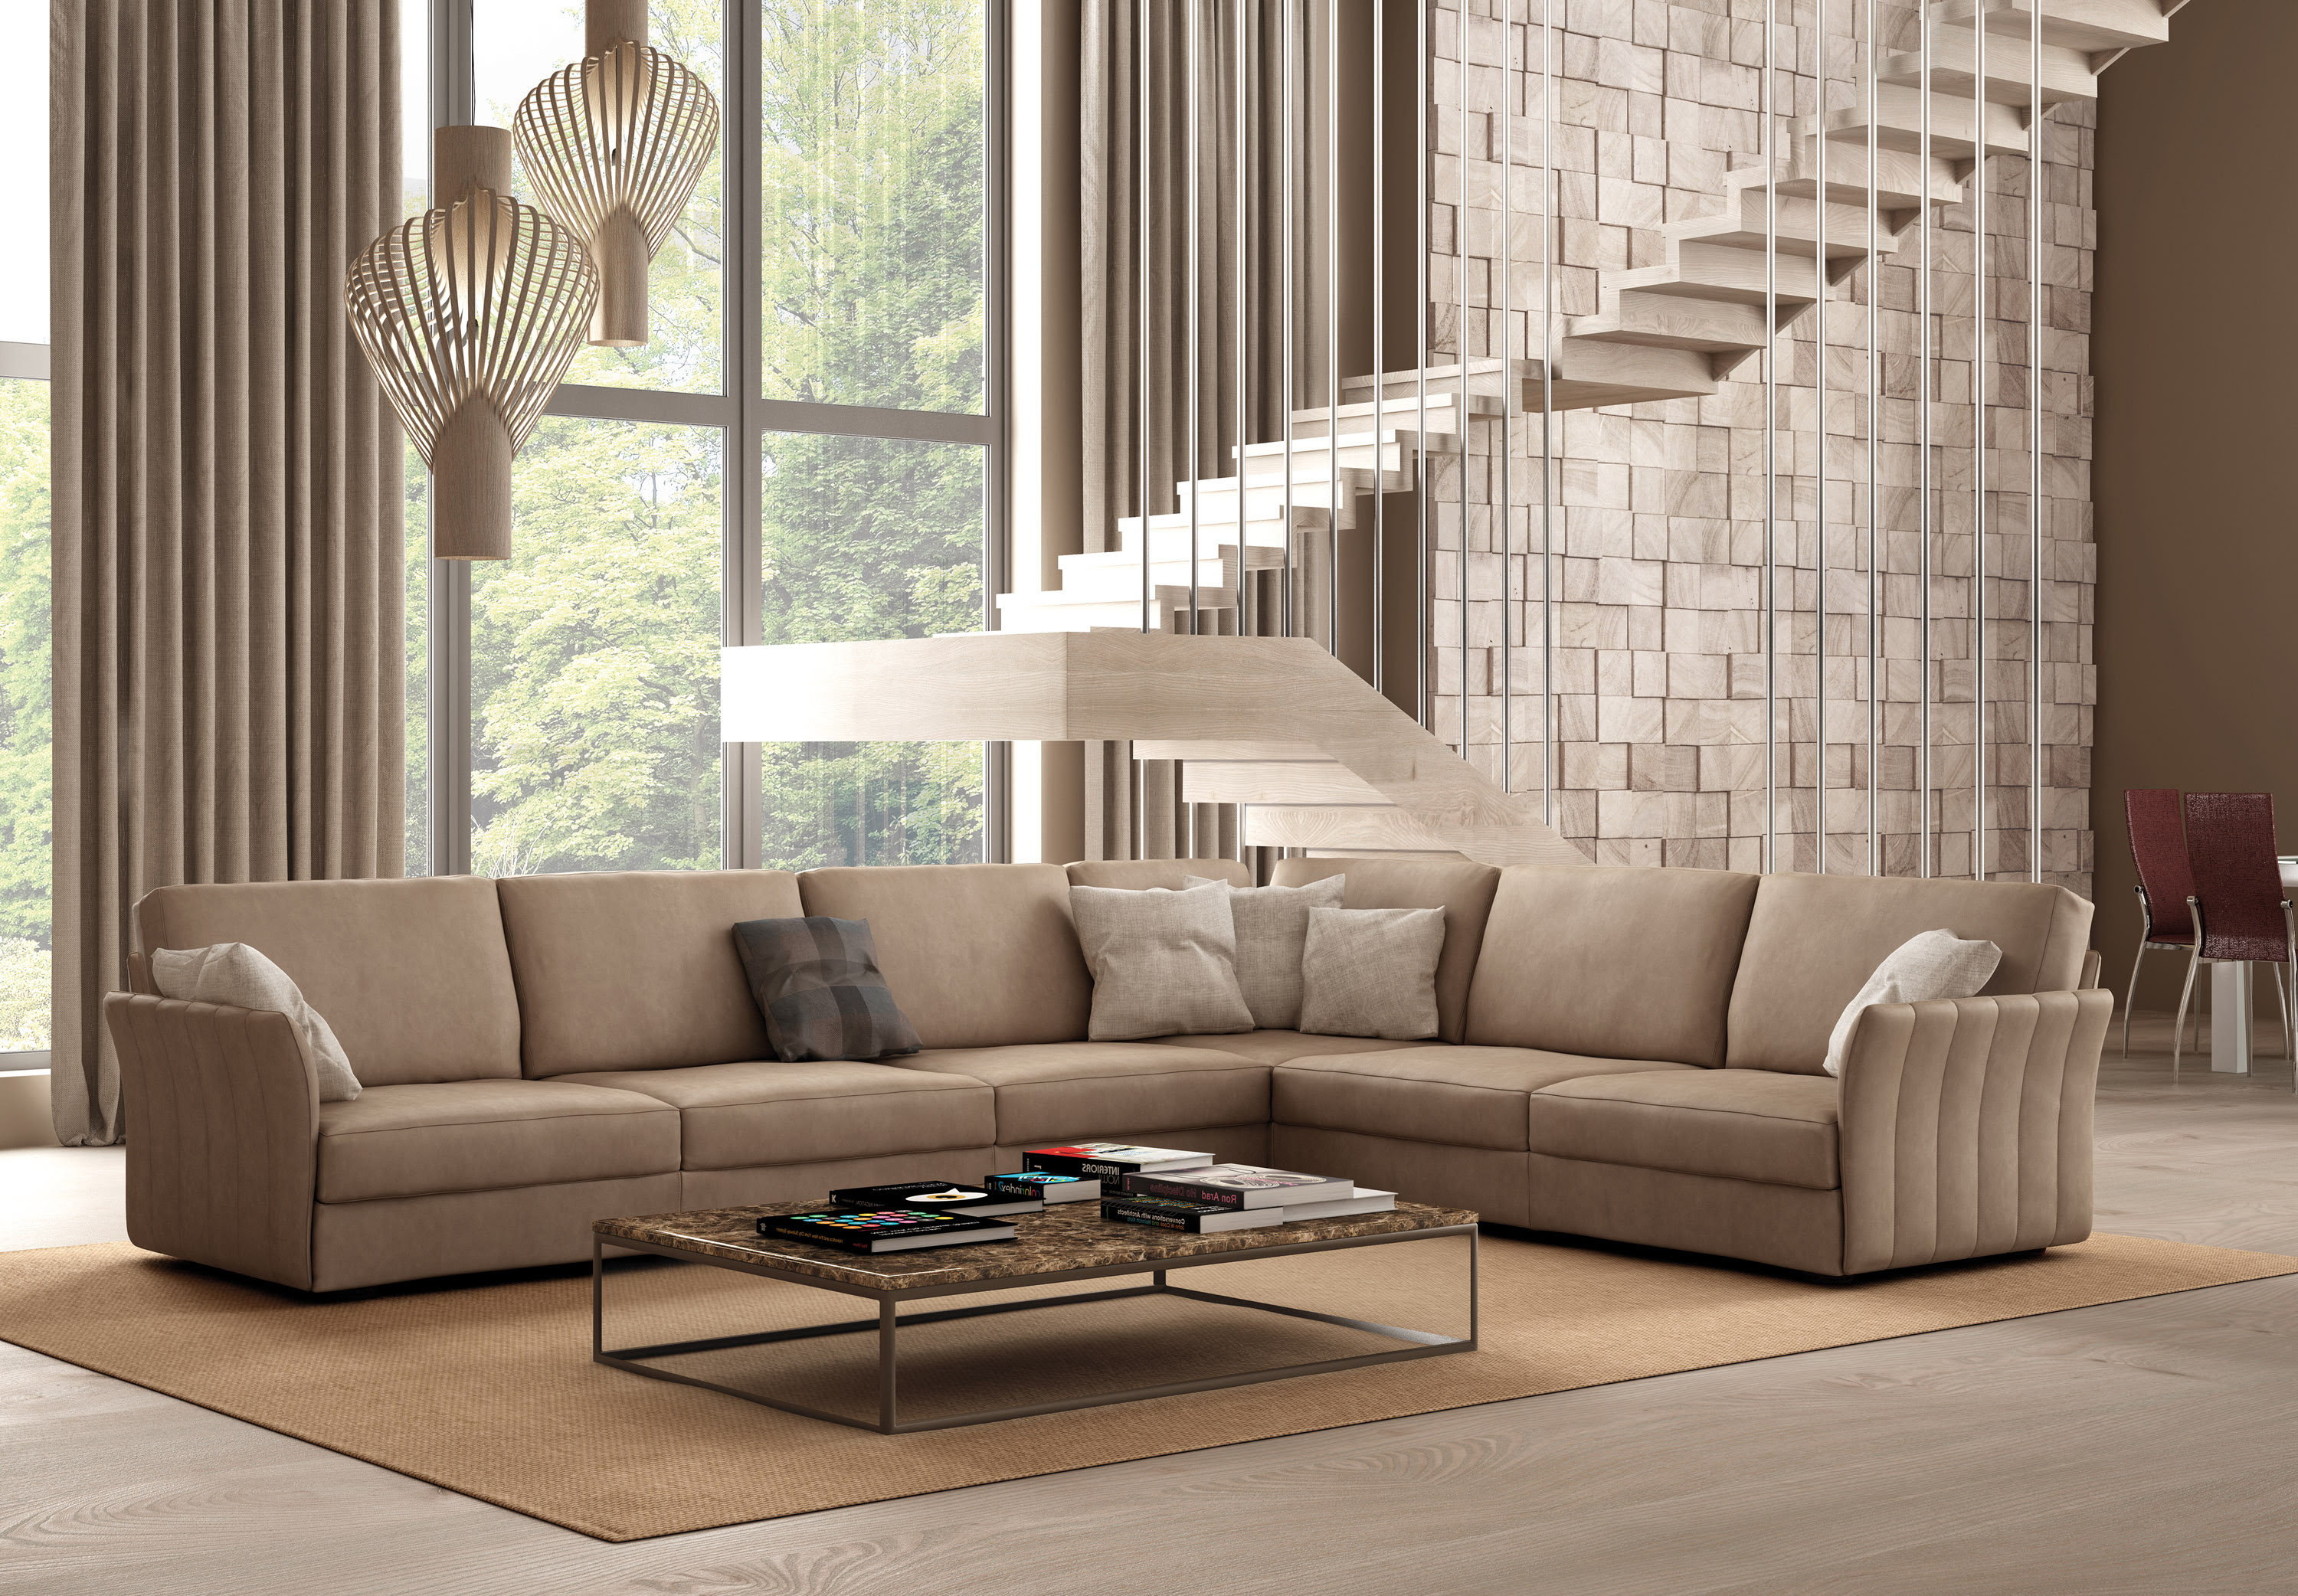 Italian Sectional Sofa Set in Luxury Leather Fort Worth ...